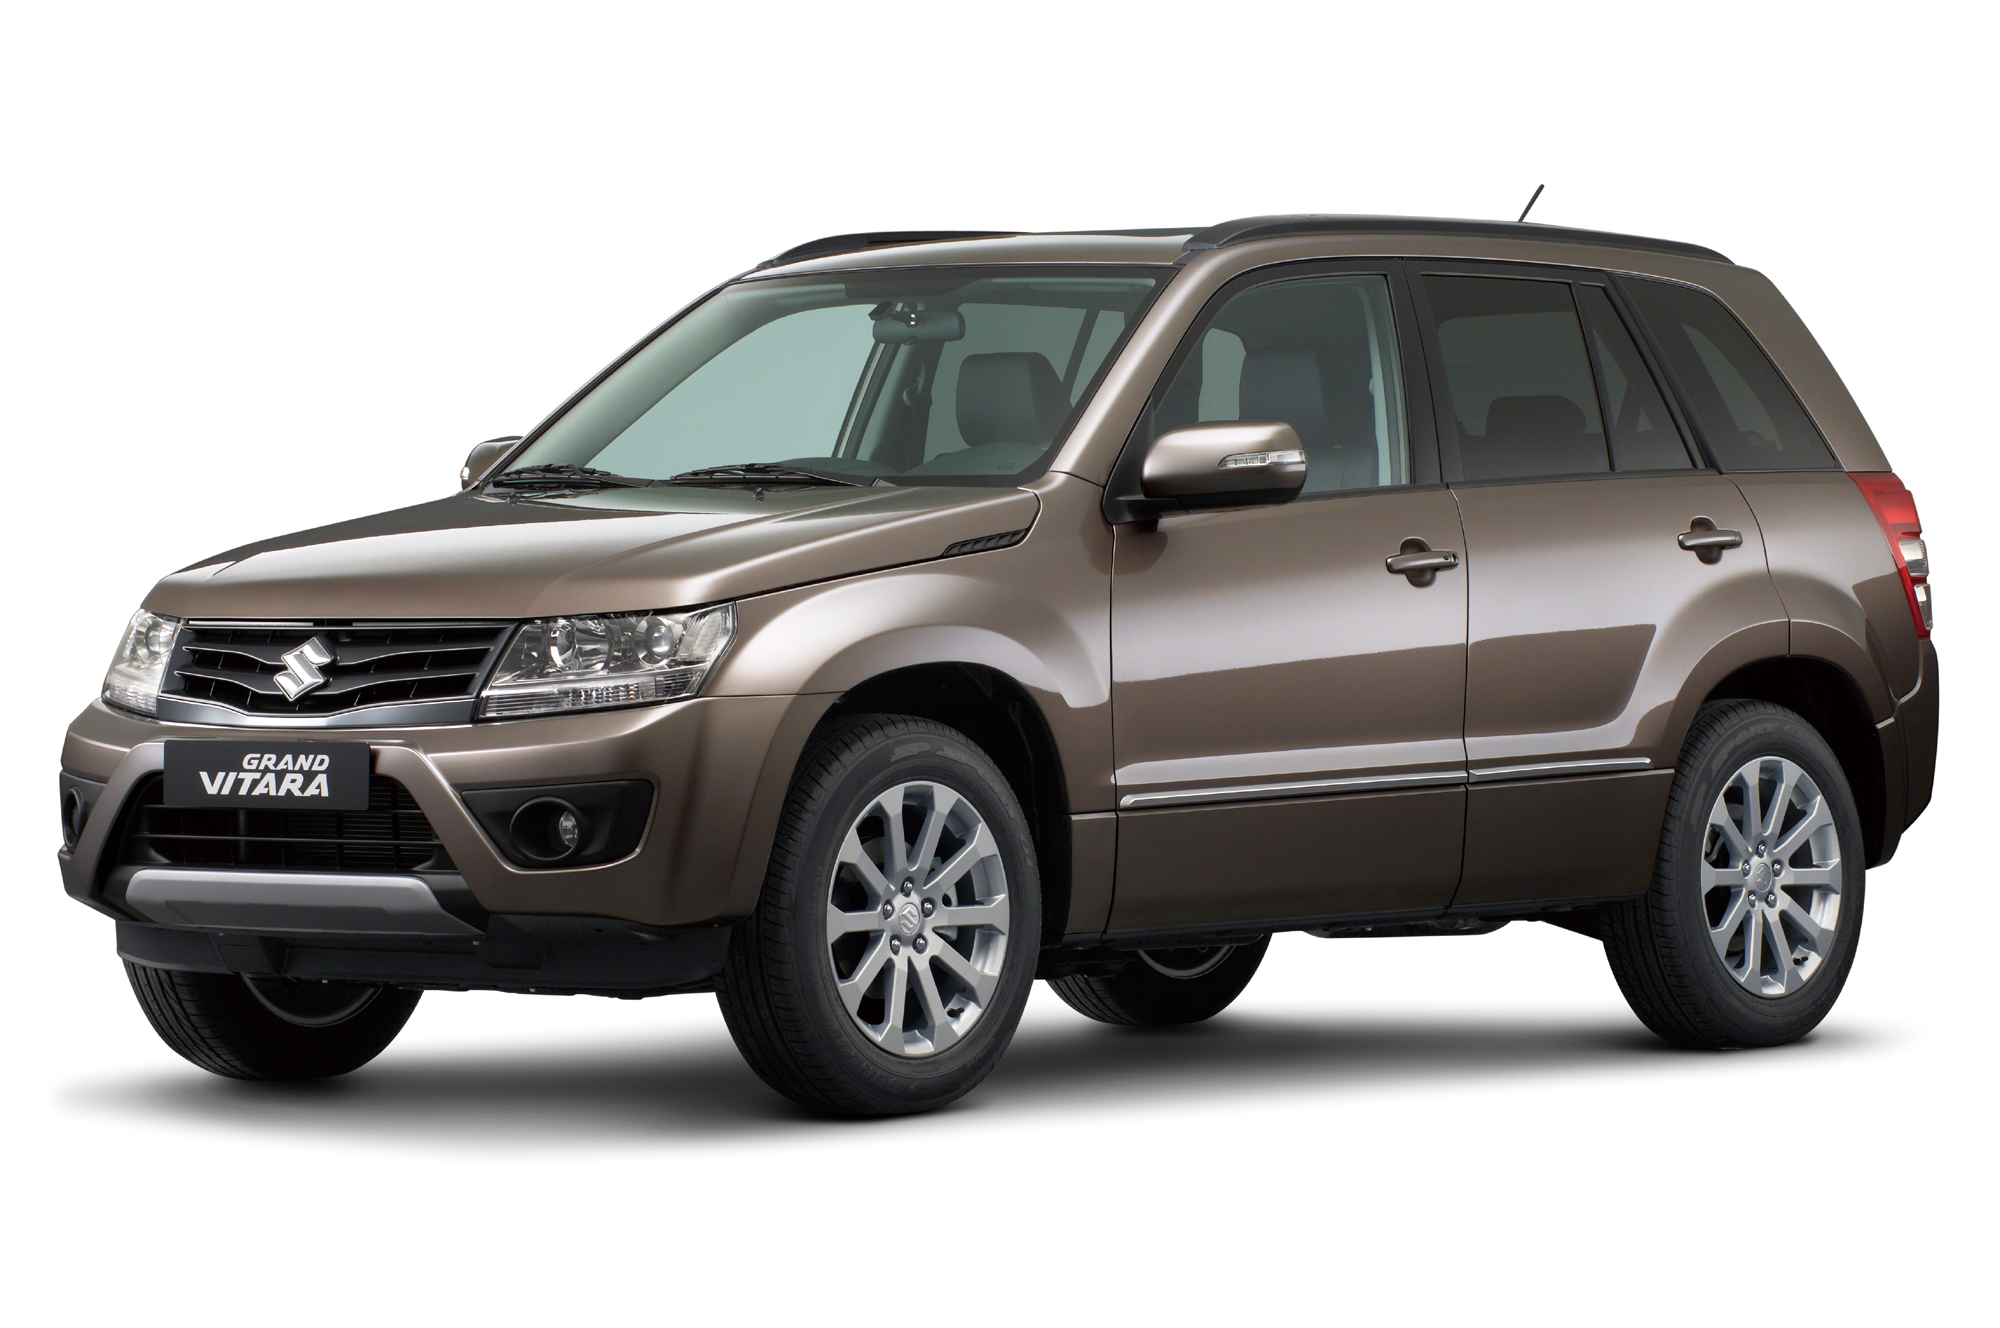 2013 Suzuki Grand Vitara Reviews, Specs and Prices | Cars.com